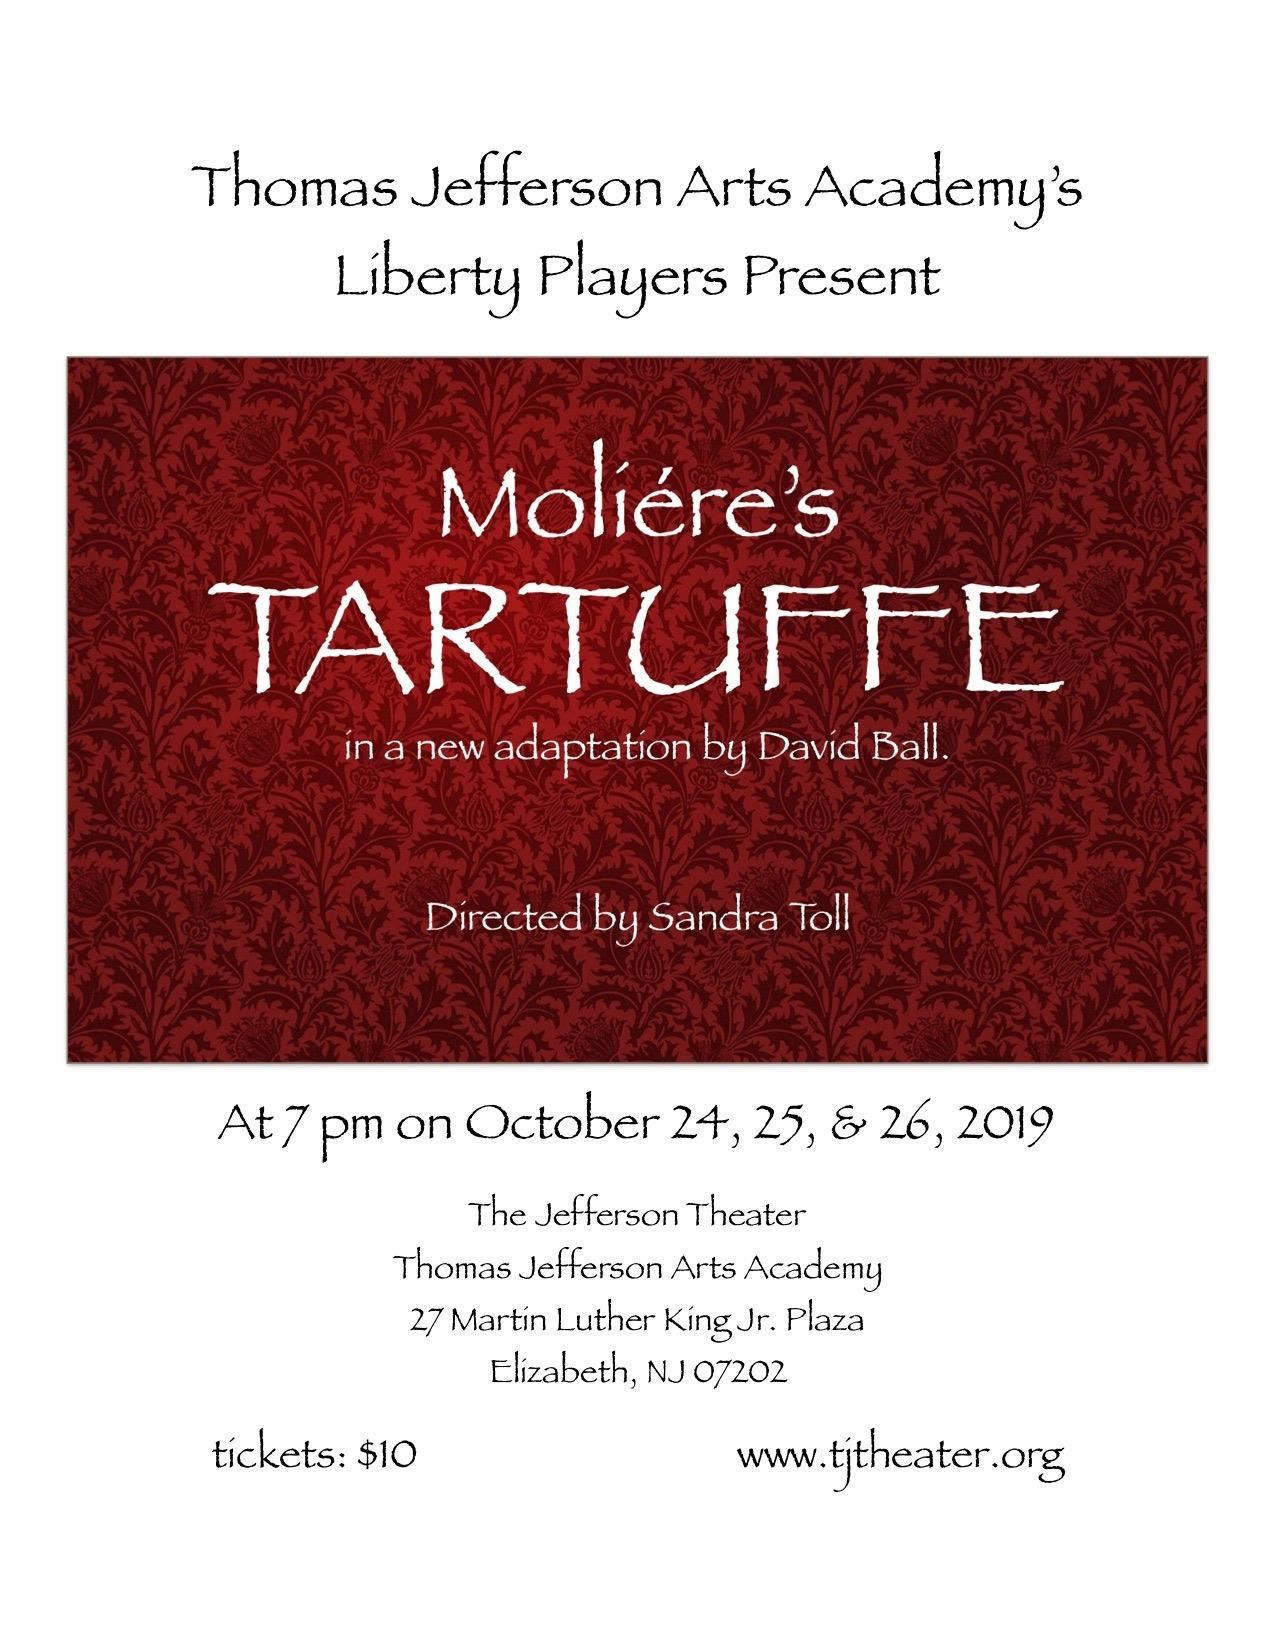 The Liberty Players present Moliere's comedy, Tartuffe